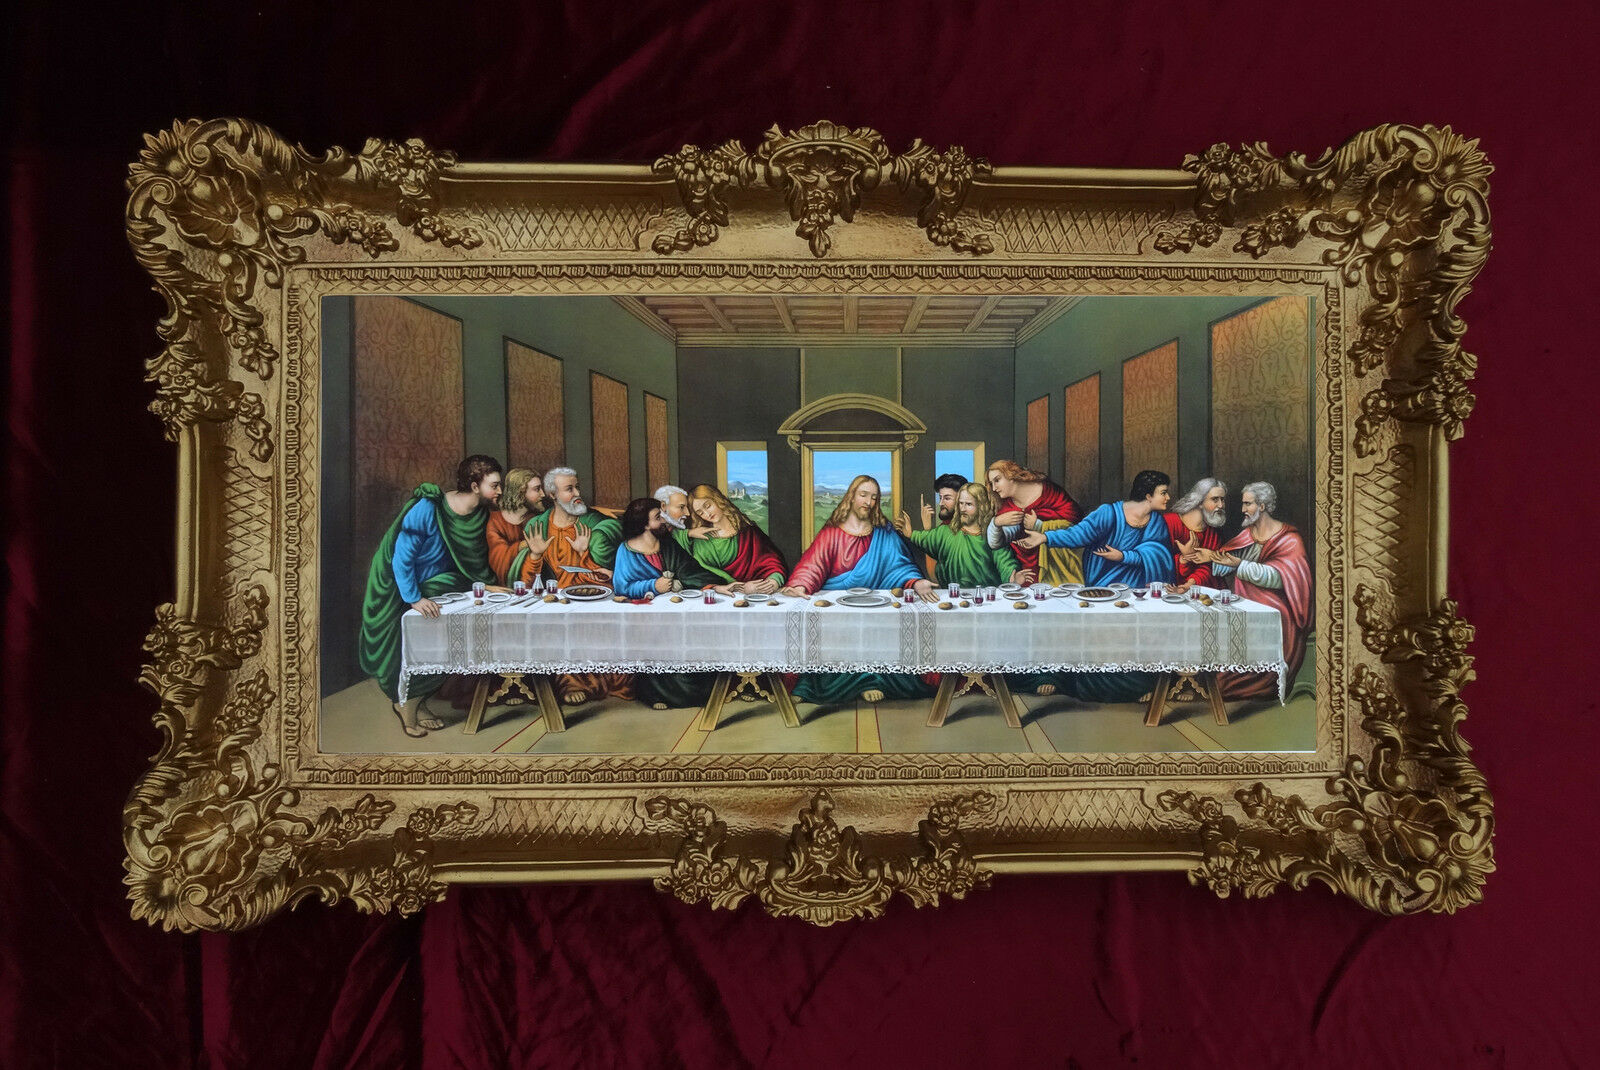 Exclusive Stehlampen Baroque Painting Last Supper 12 Apostle Ultima Cena